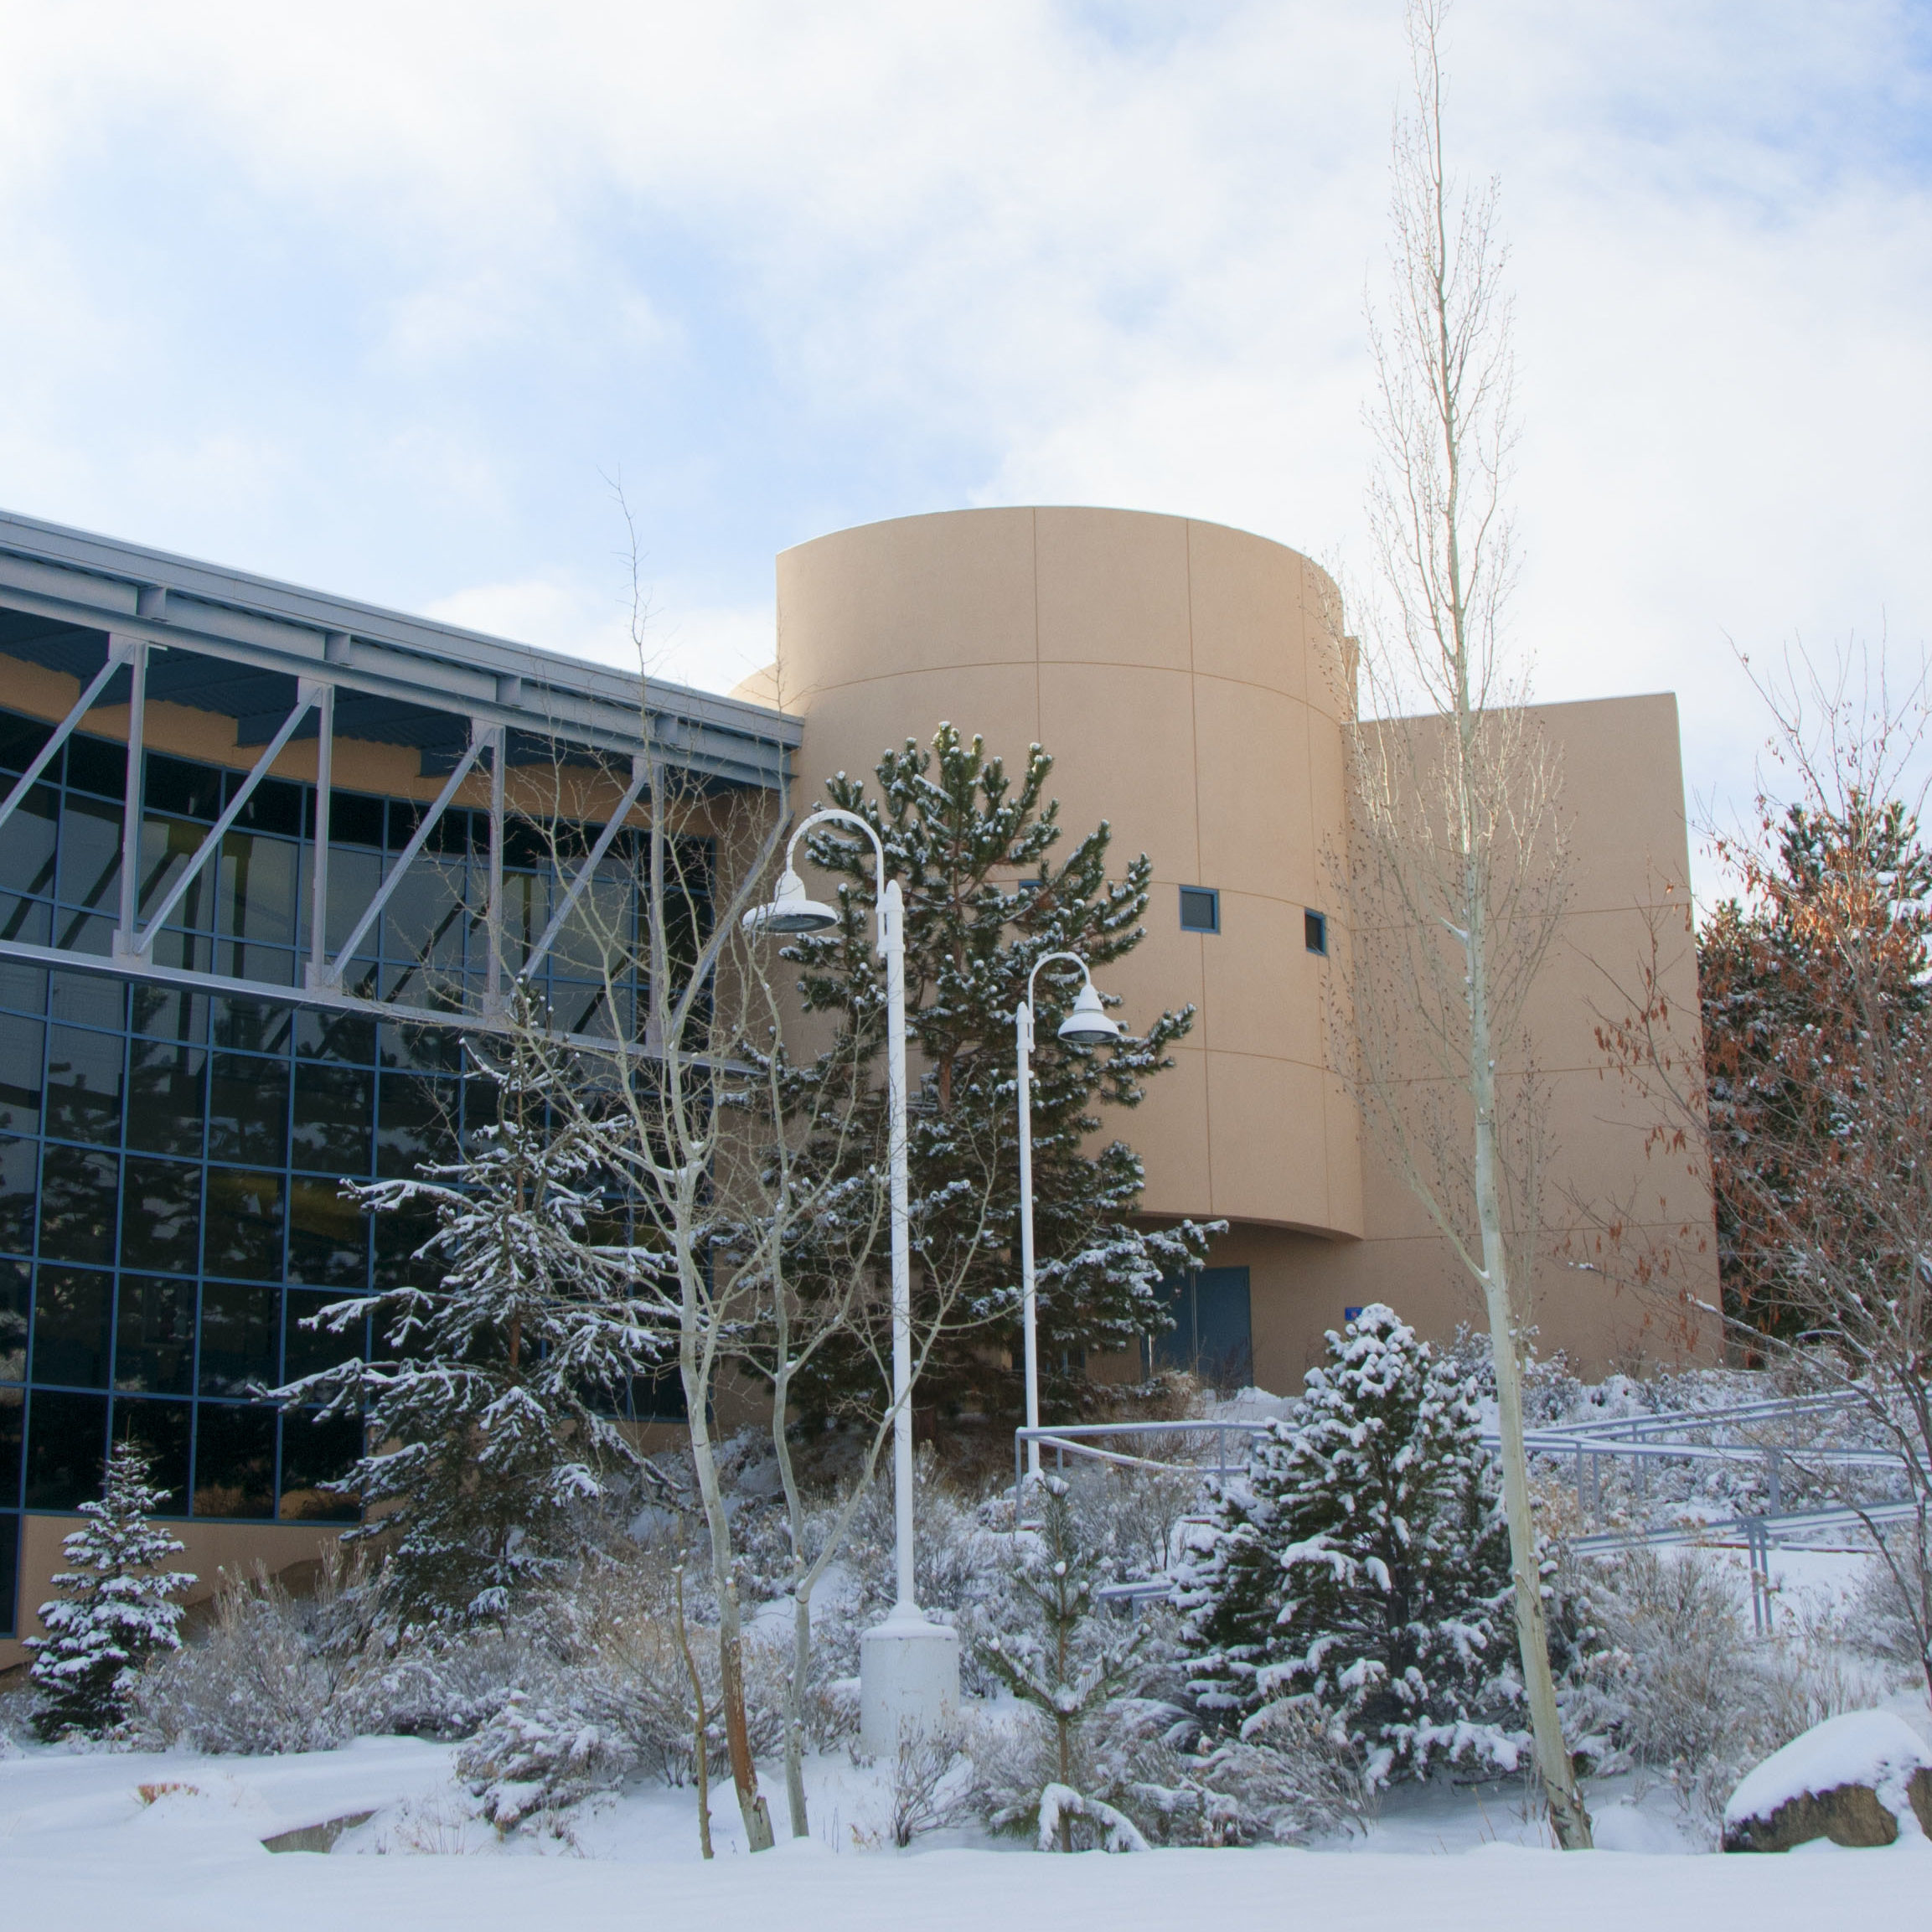 Snowy Campus Building